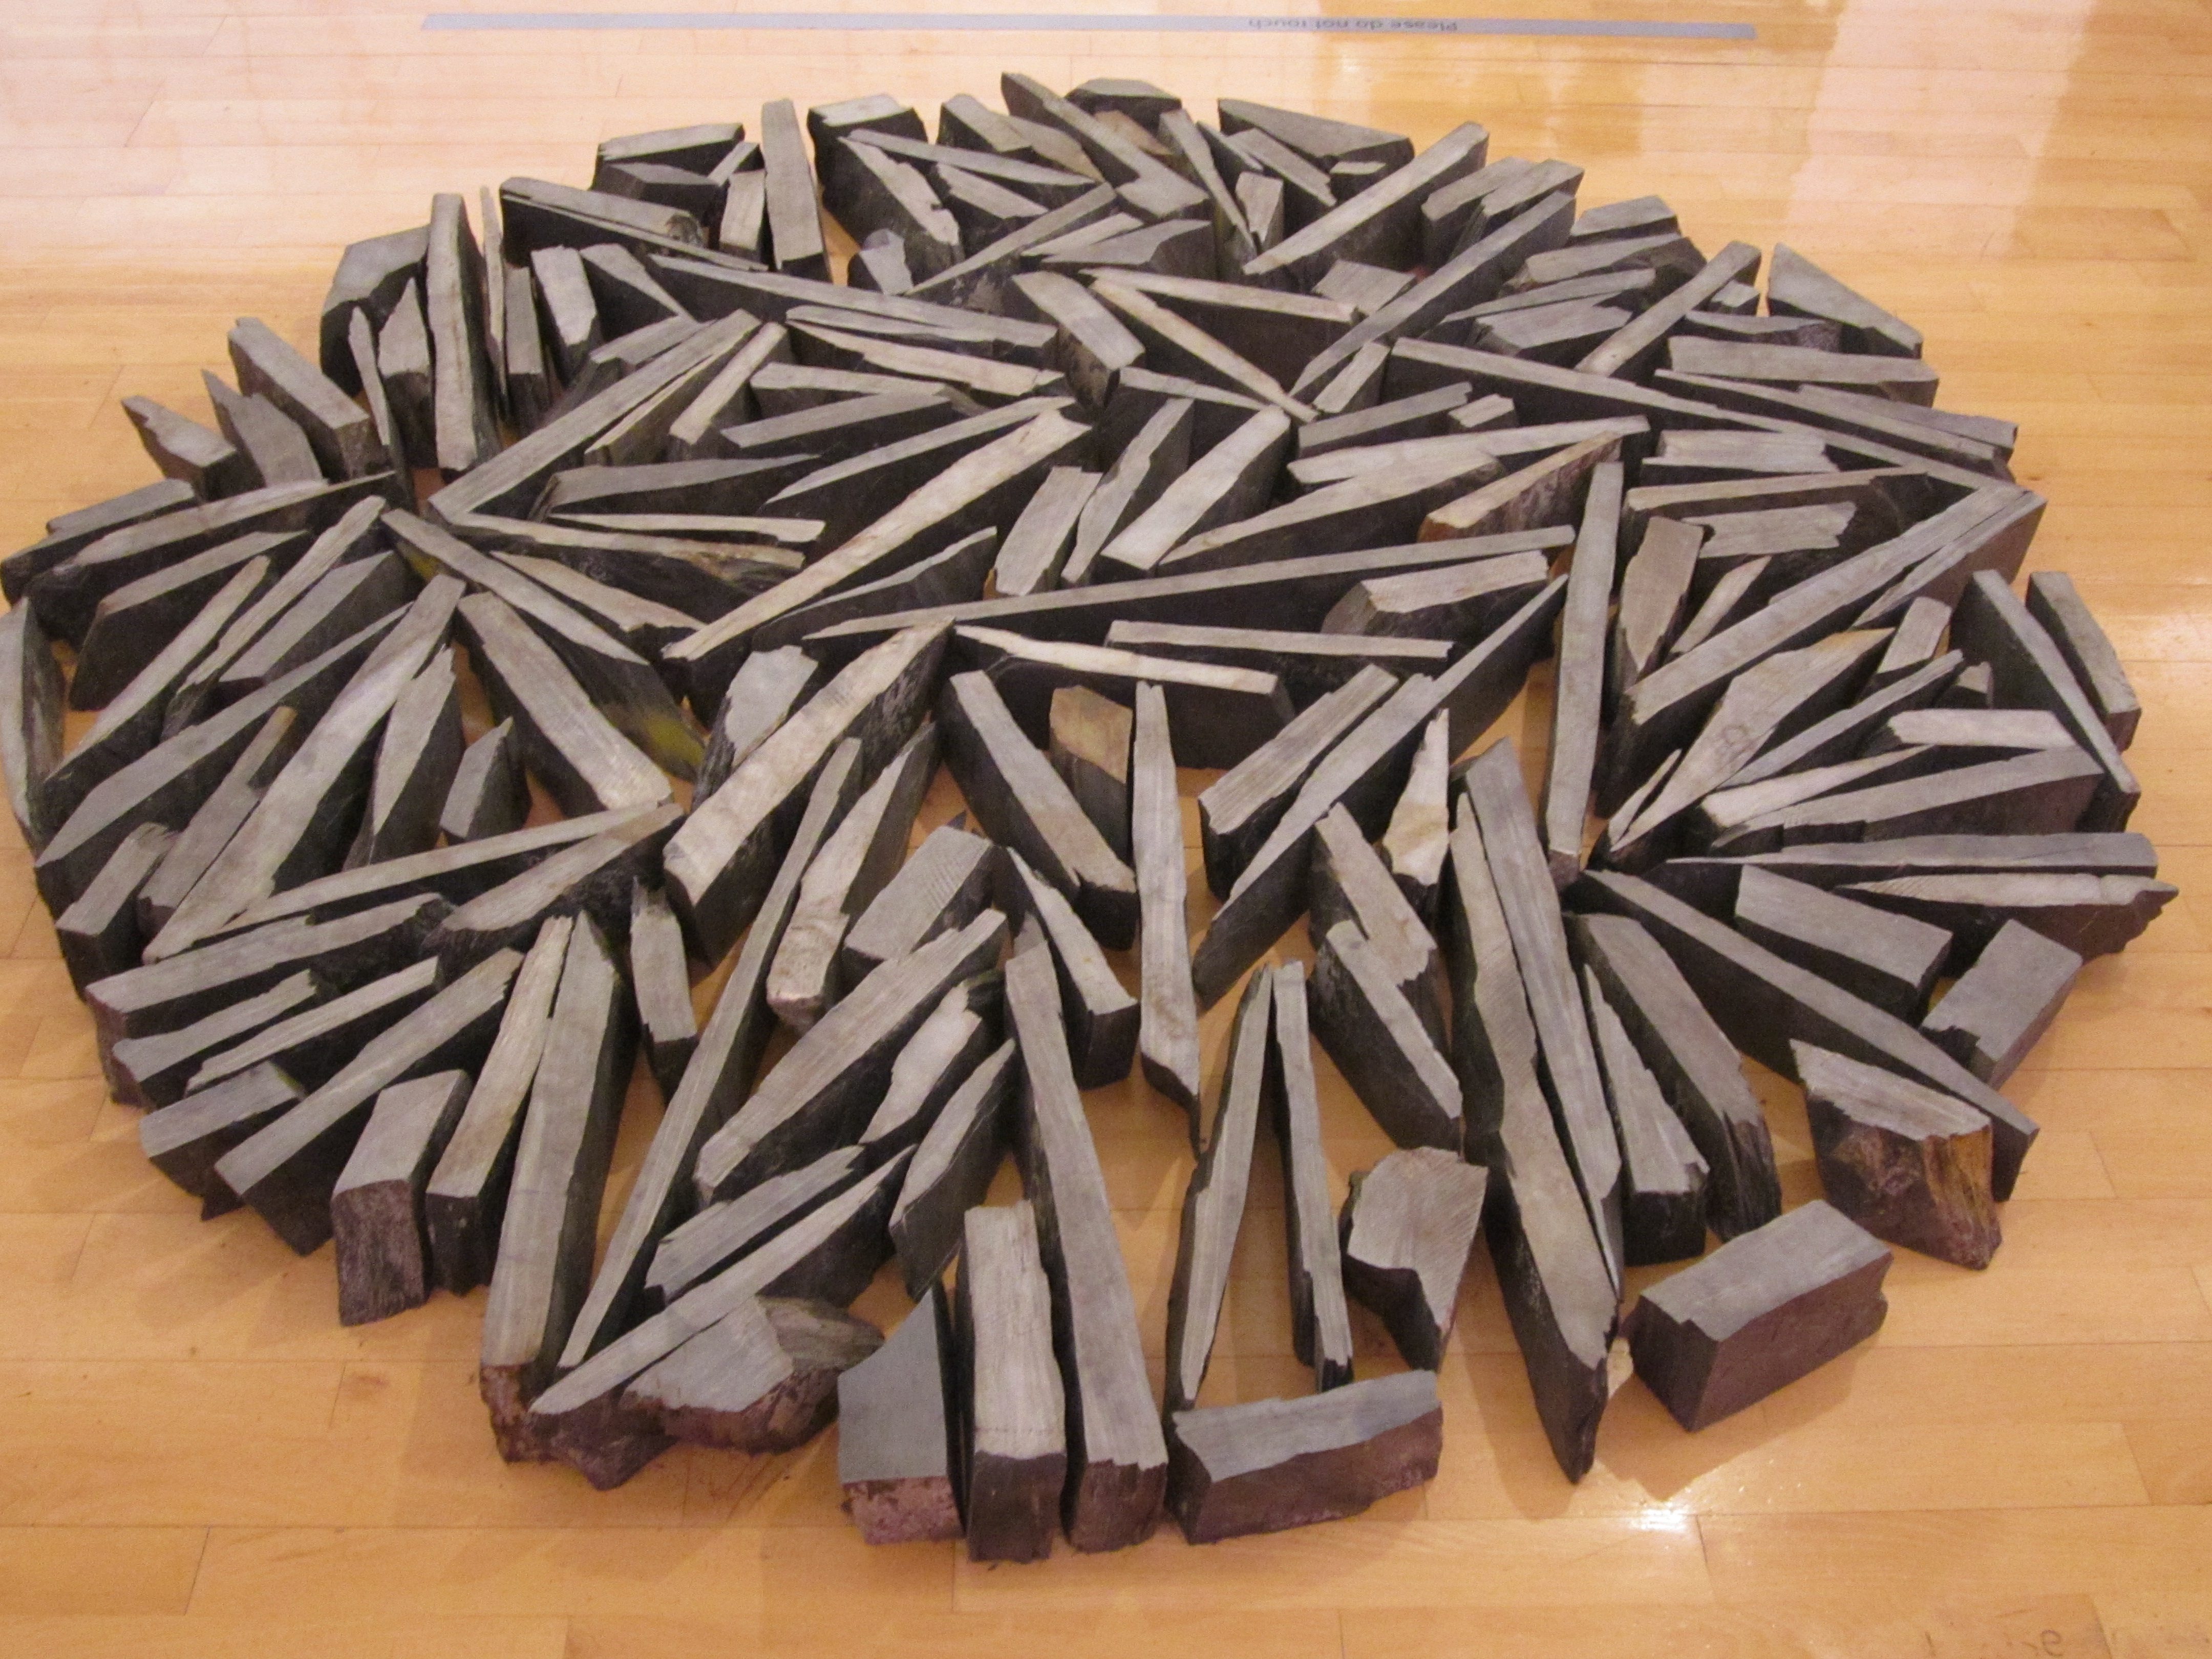 An analysis of conceptual art by richard long